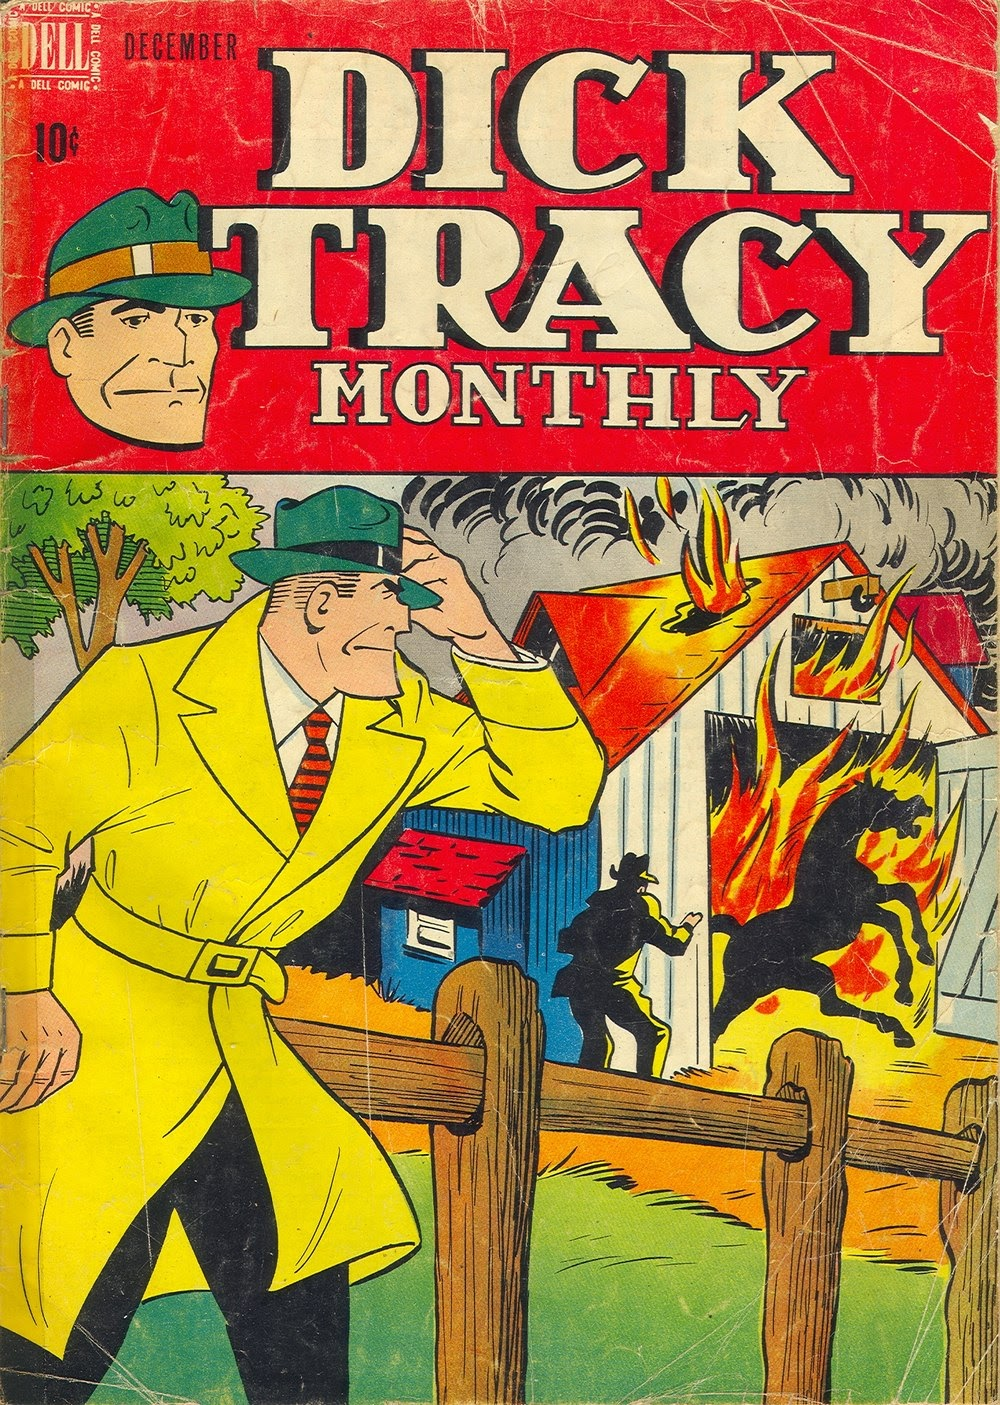 Dick Tracy Monthly 12 Page 1